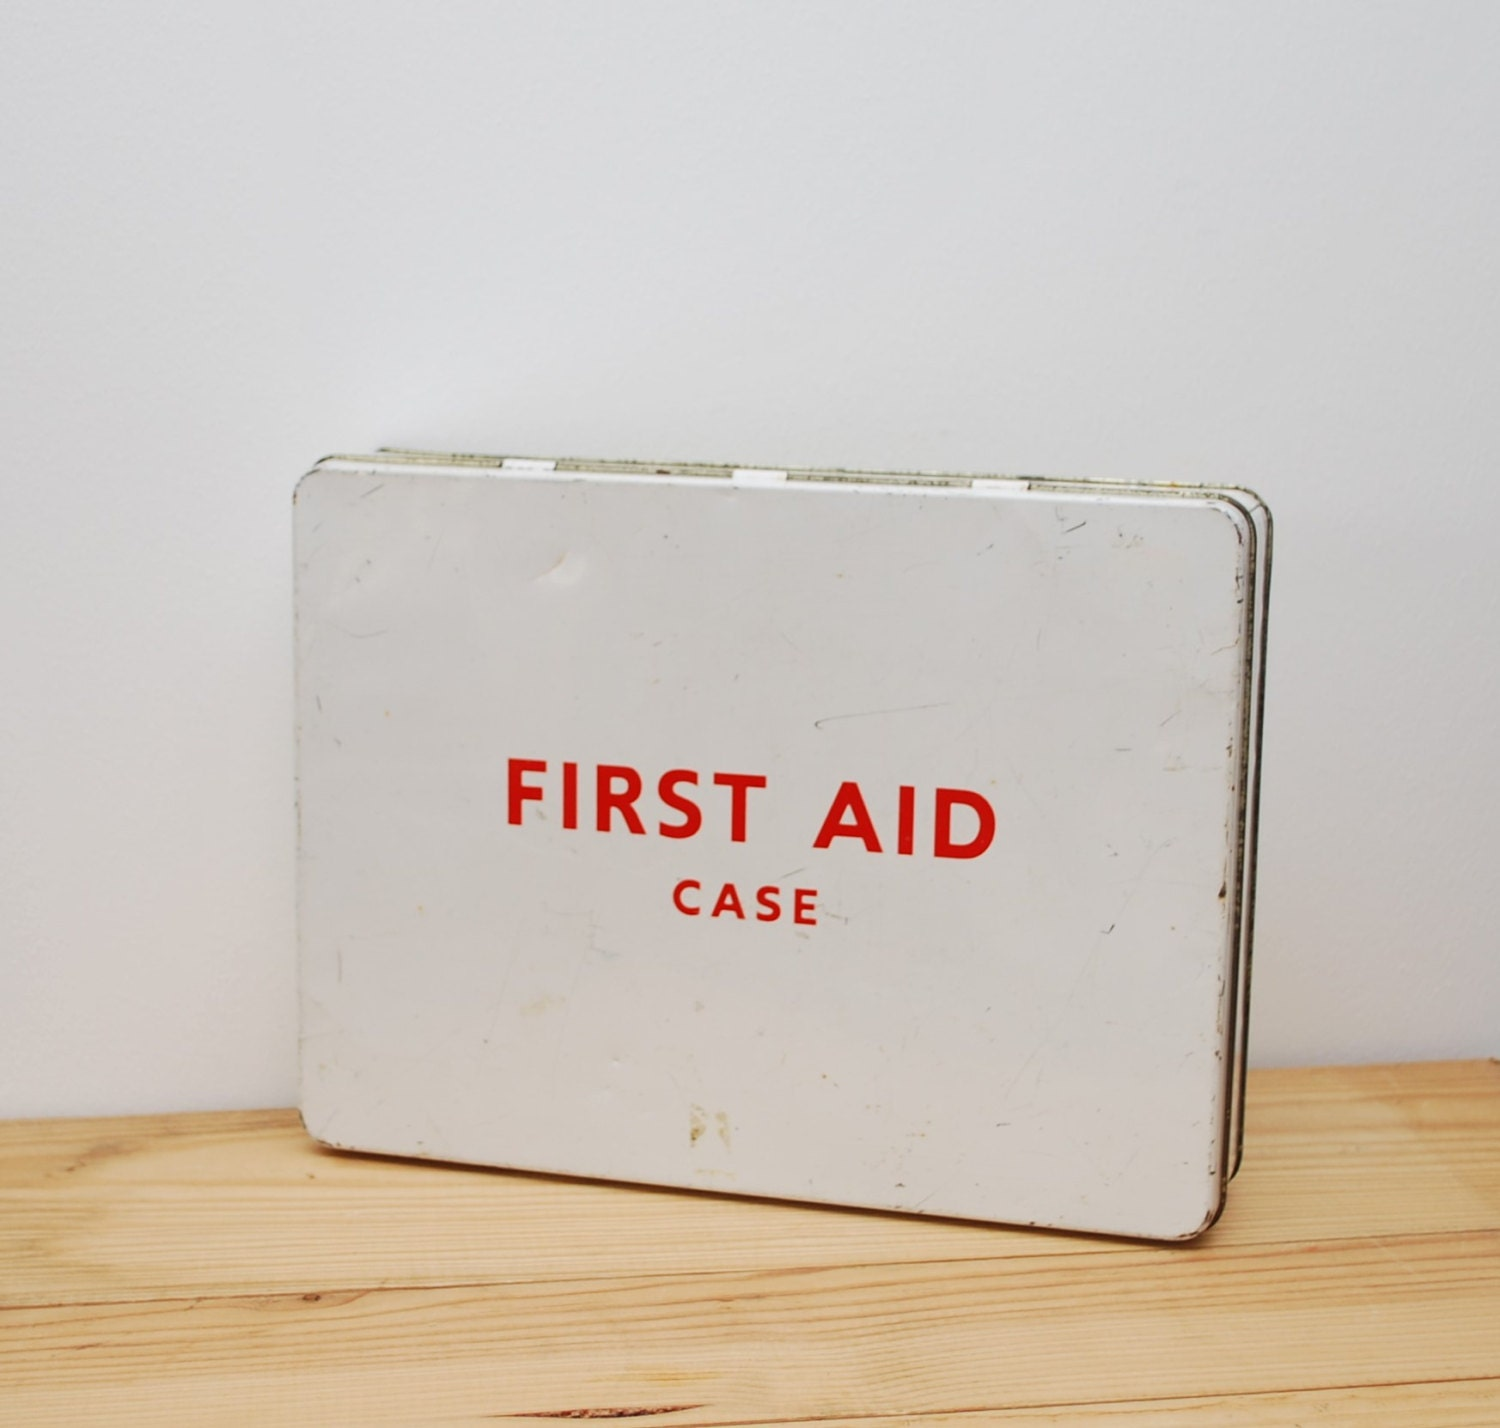 essay for first aid First aid prelim essay first aid setting priorities for managing a first aid situation and assessing the casualty situational analysis to deal with the situation.